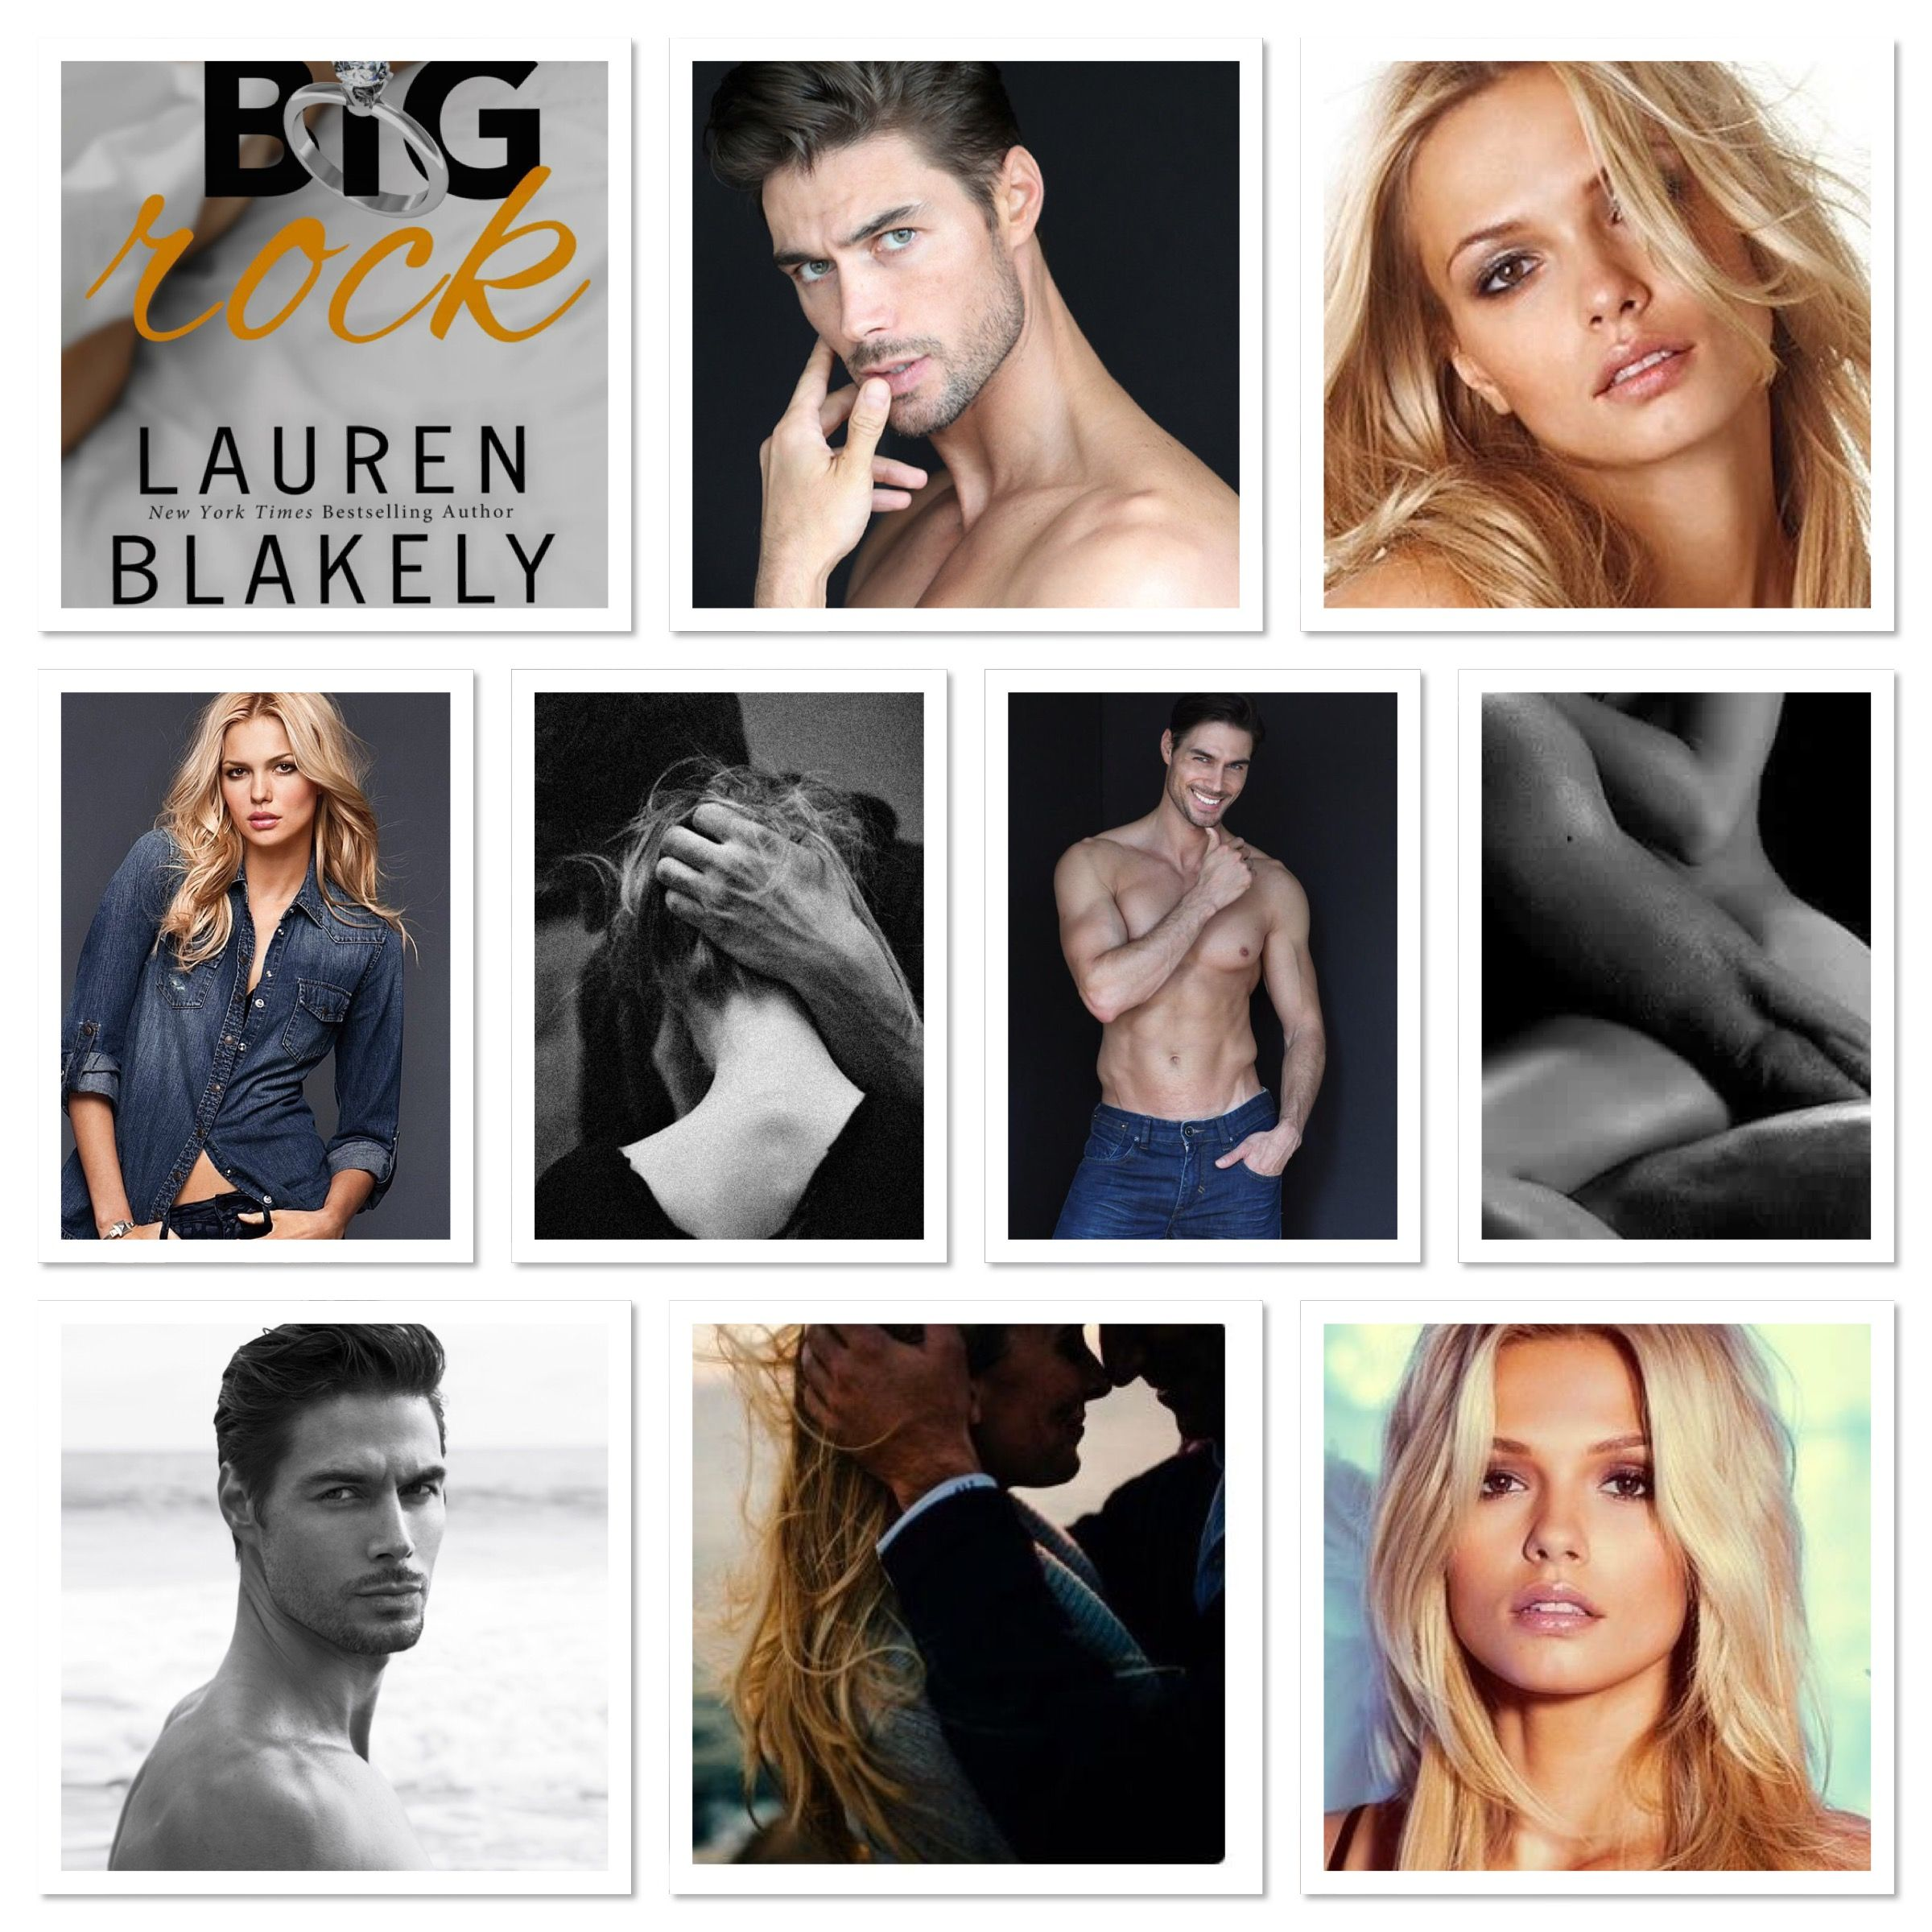 Big Rock by Lauren Blakely | Character inspiration, Favorite books, Dream casting